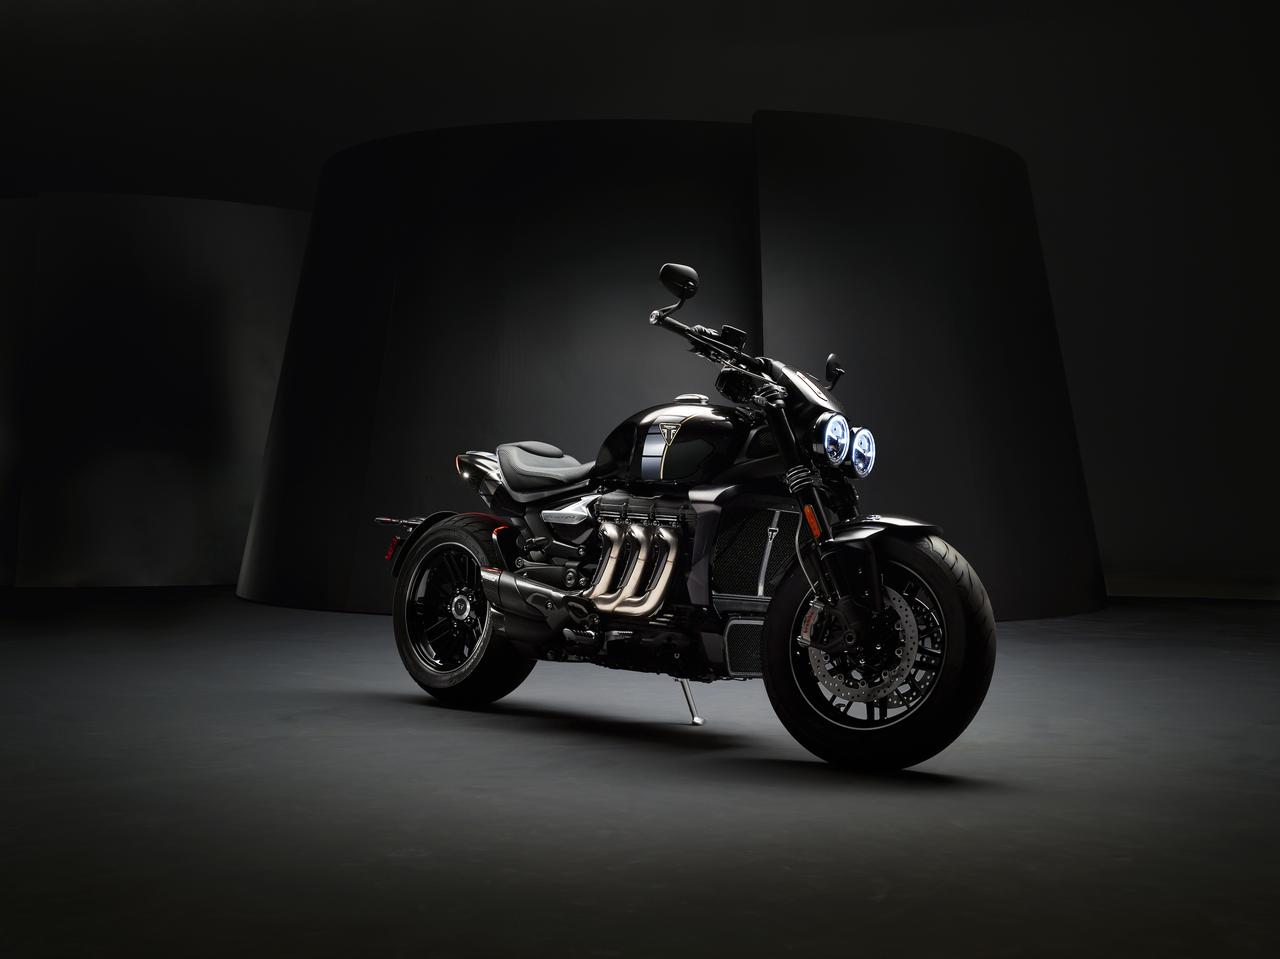 Images : 3番目の画像 - アルバムで詳細を詳しく見る! - LAWRENCE - Motorcycle x Cars + α = Your Life.